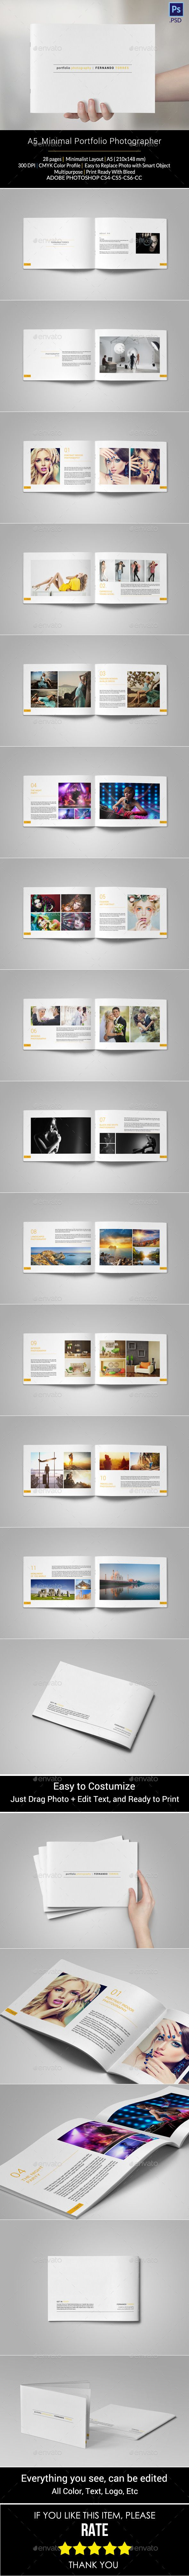 Portfolio Photographer — Photoshop PSD #simple #print template • Available here → https://graphicriver.net/item/portfolio-photographer/11063387?ref=pxcr